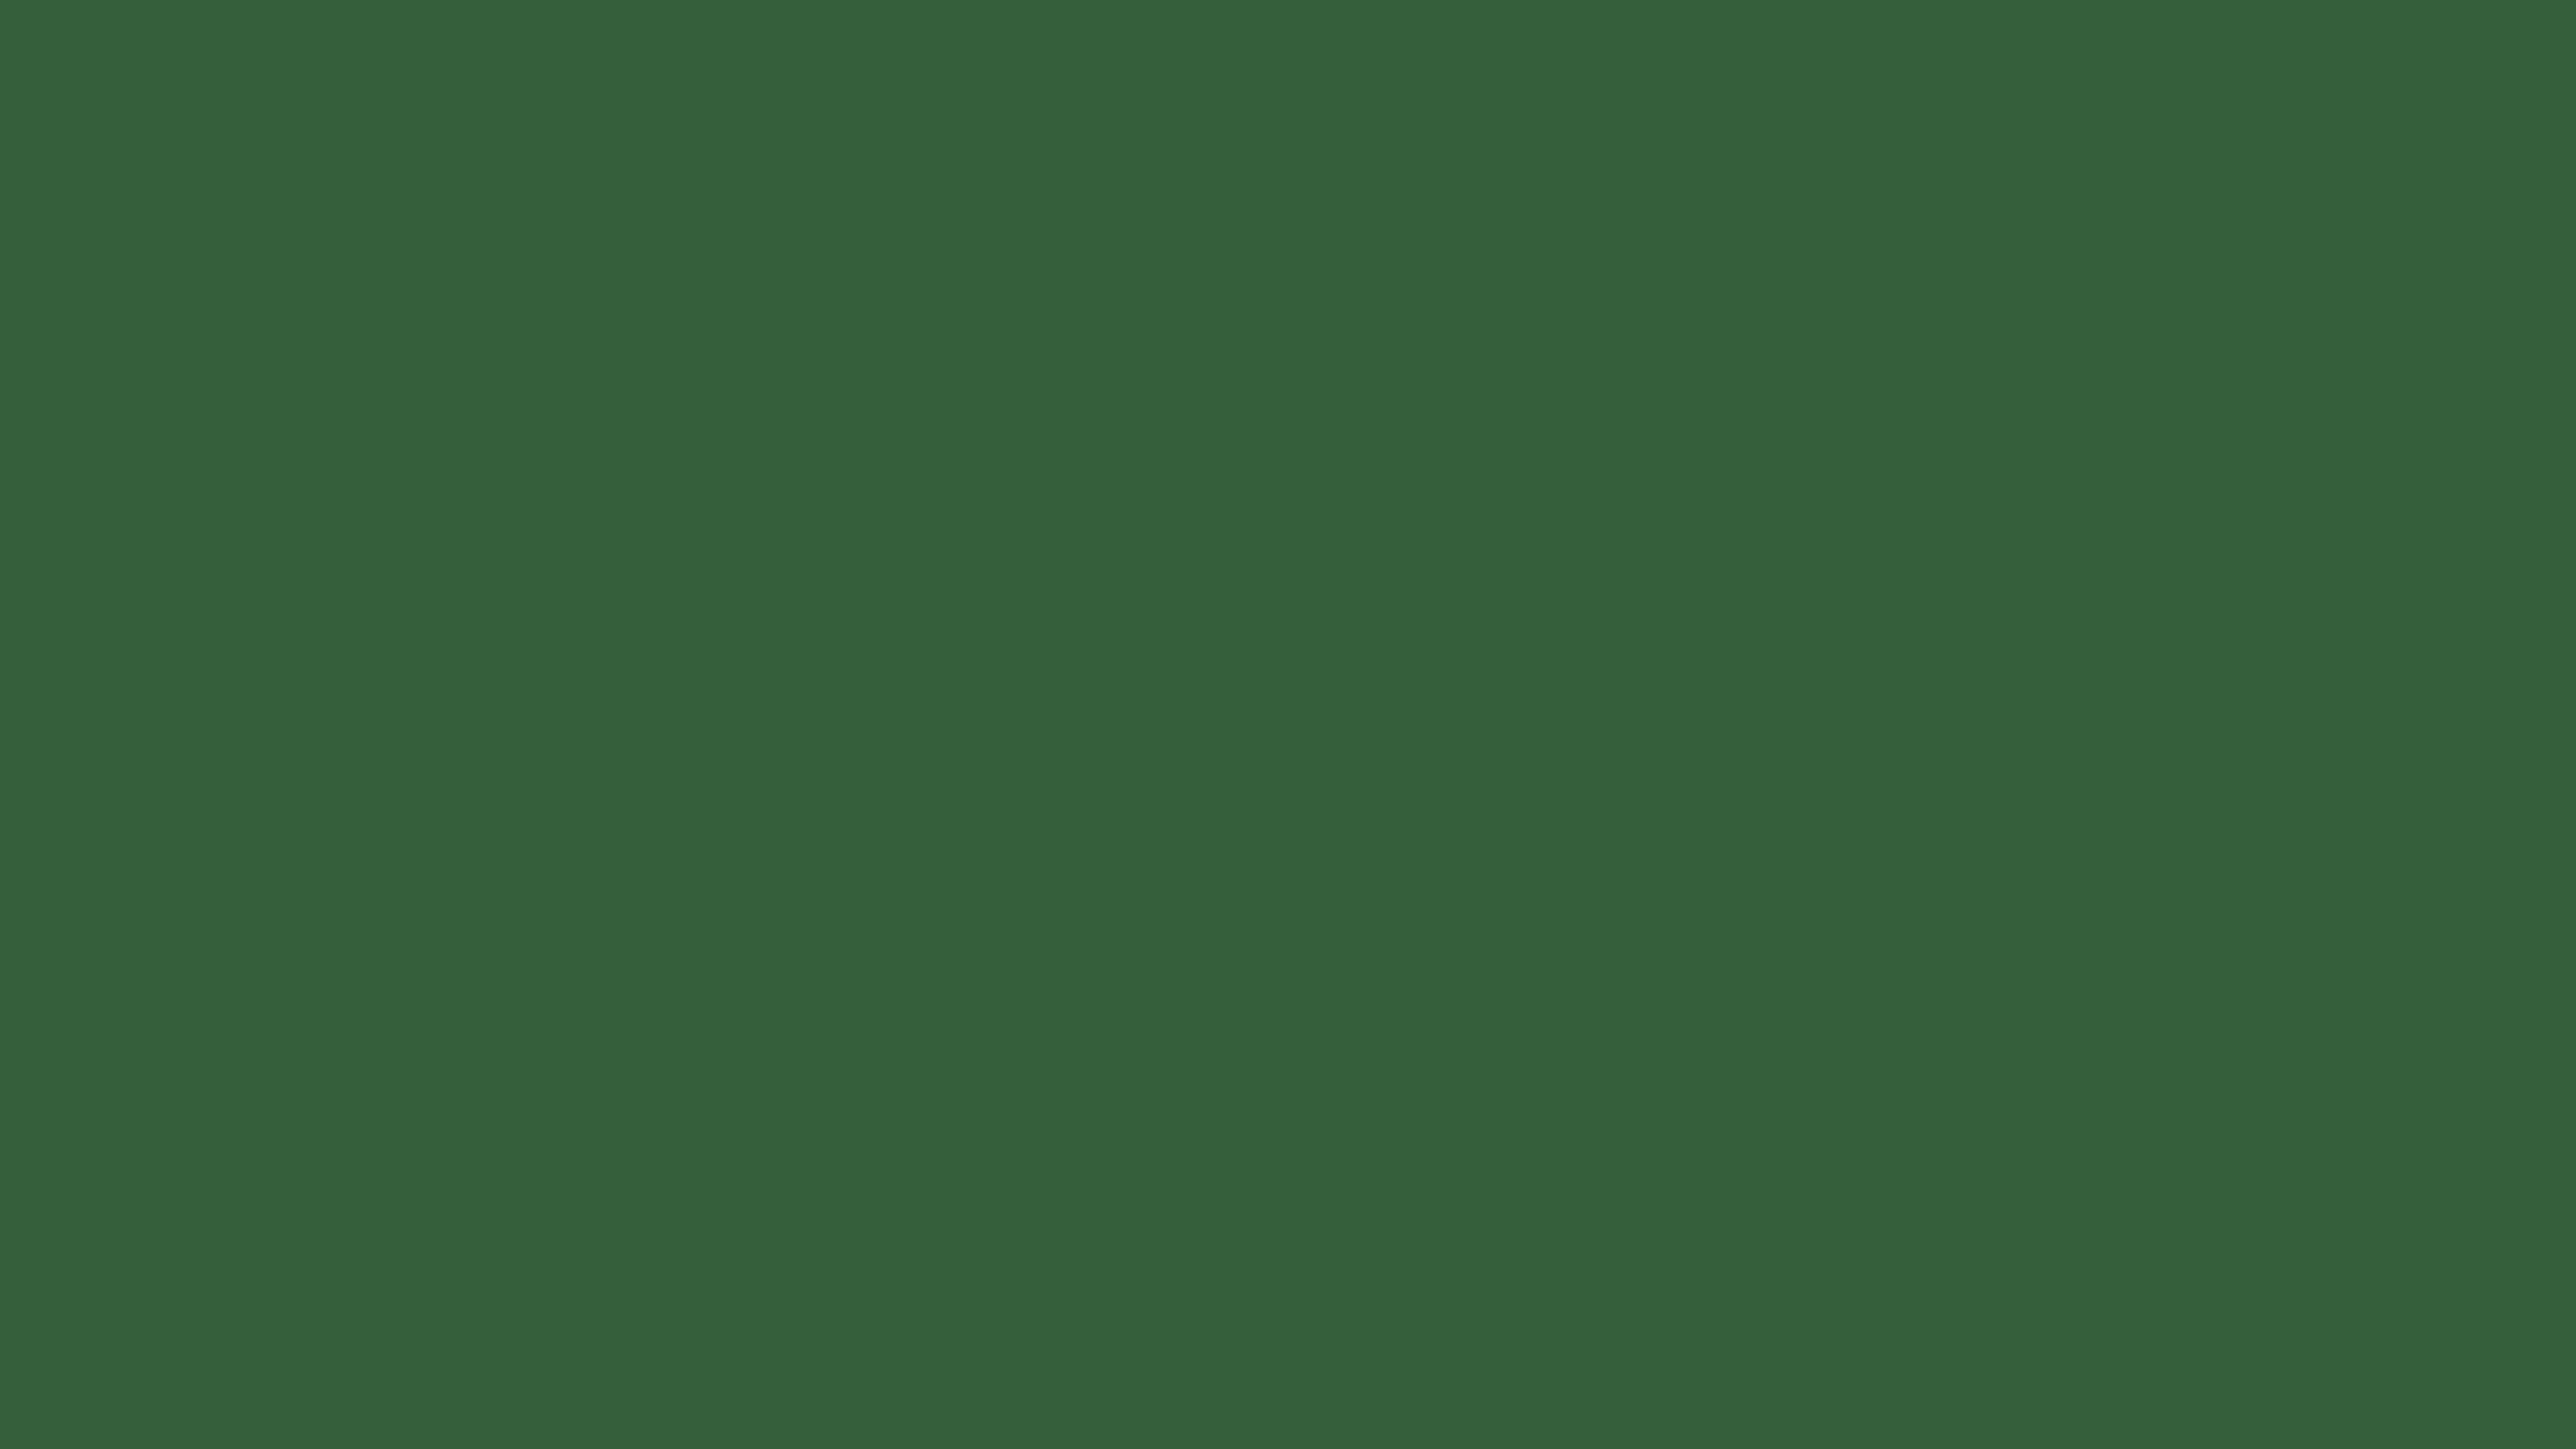 4096x2304 Deep Moss Green Solid Color Background